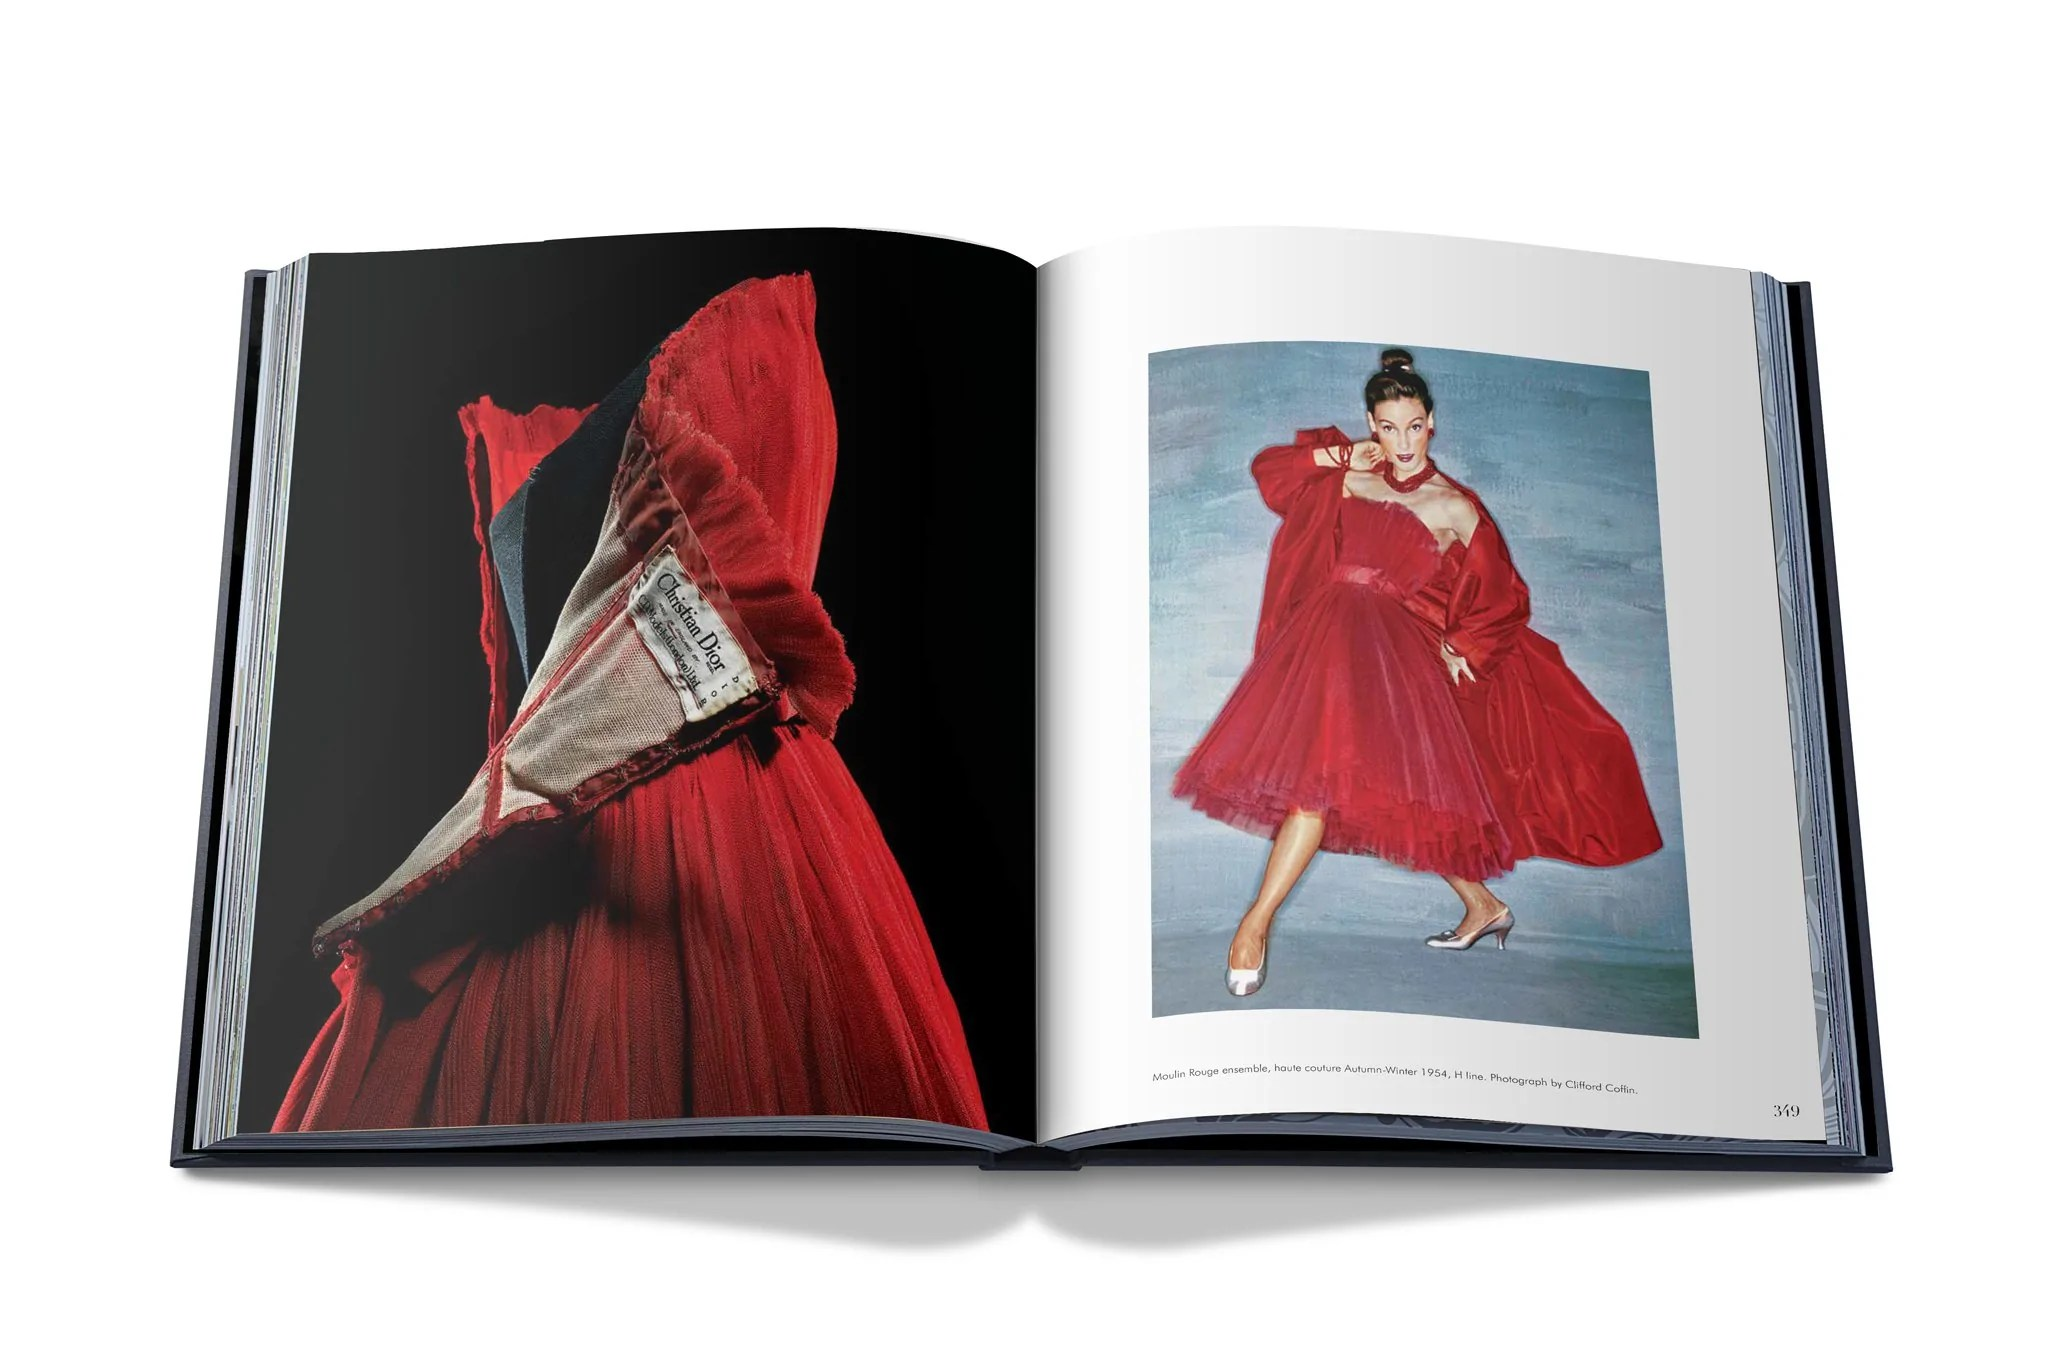 Moulin Rouge Libro Dior By Christian Dior Book By Olivier Saillard Assouline